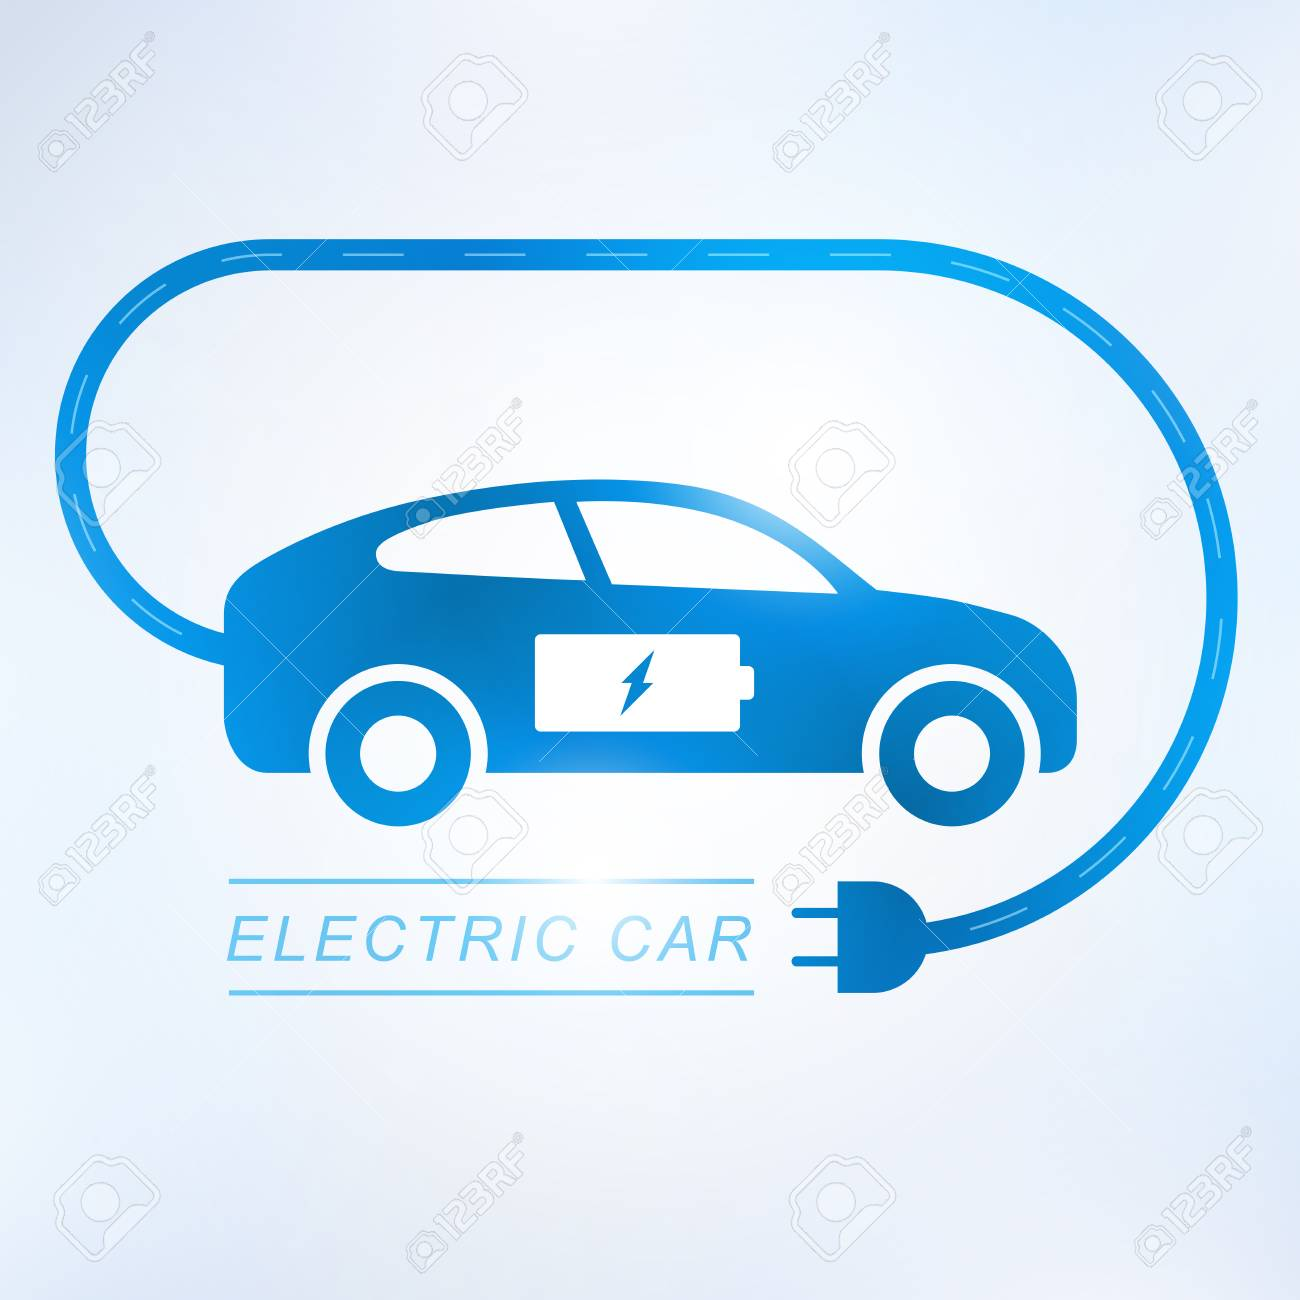 hight resolution of electric car and electrical charging station symbol icon vector illustration stock vector 95059492